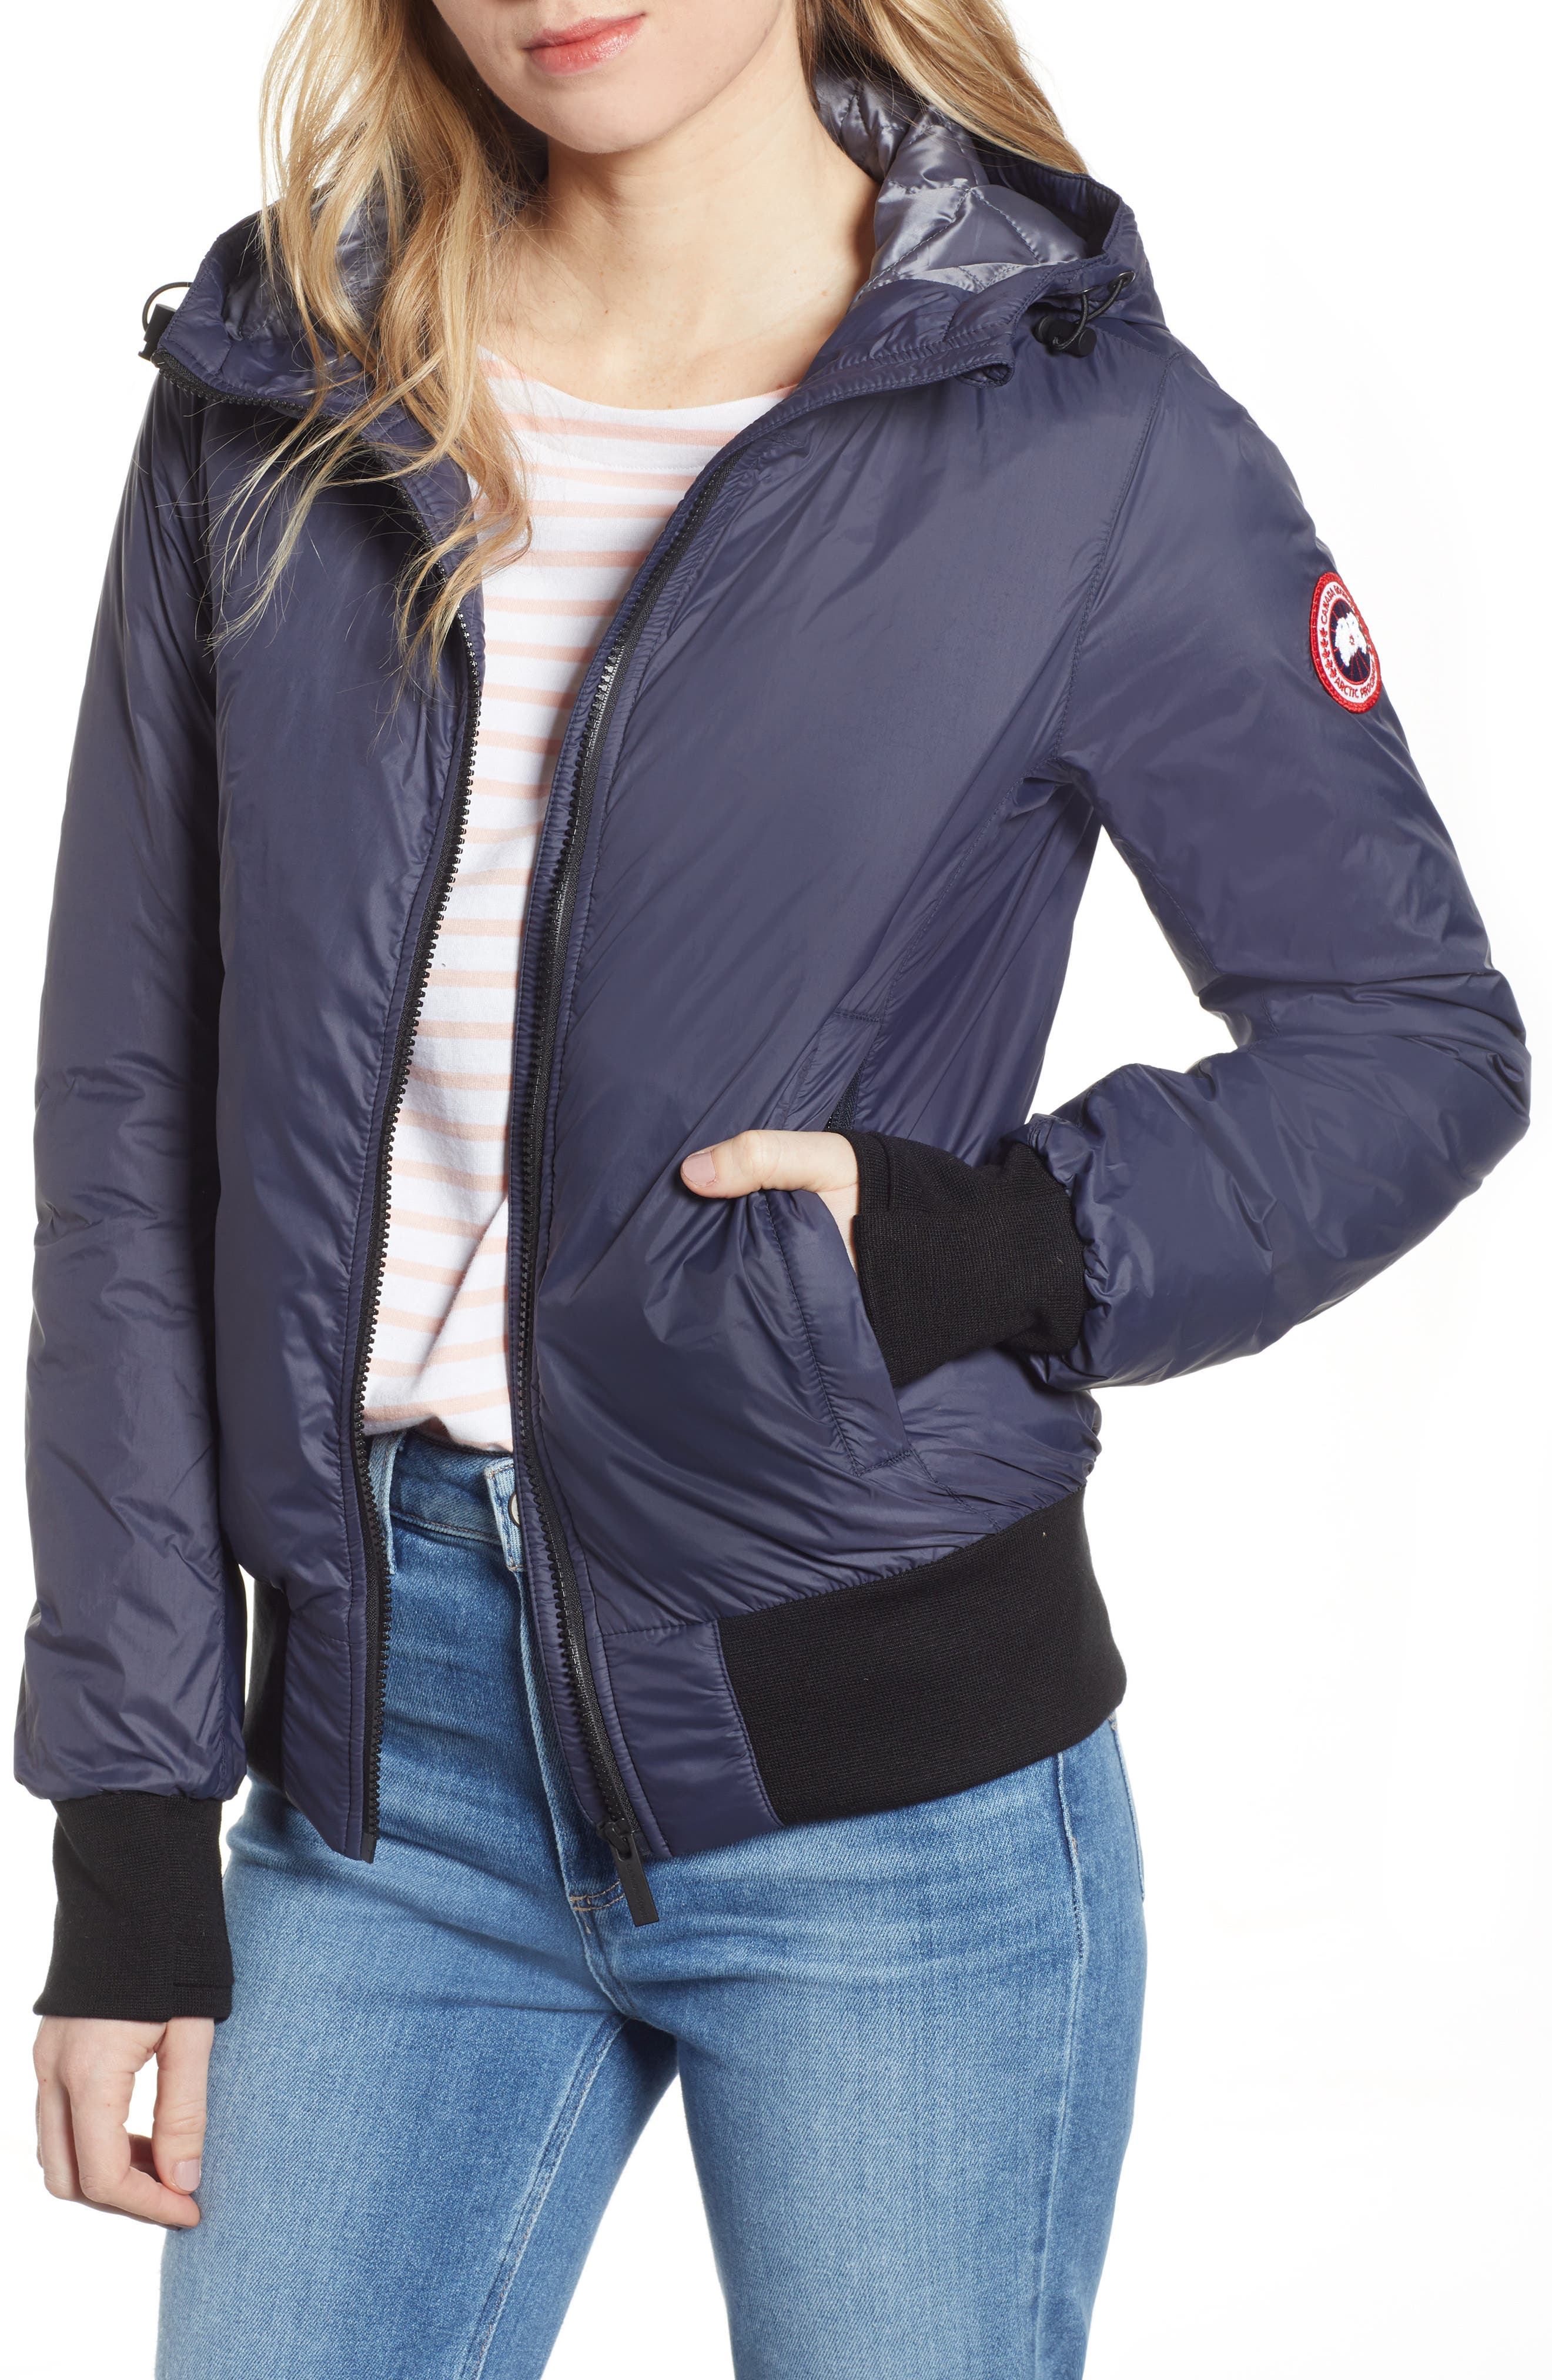 Canada Goose Dore Goose Down Hooded Jacket, (0) - Blue